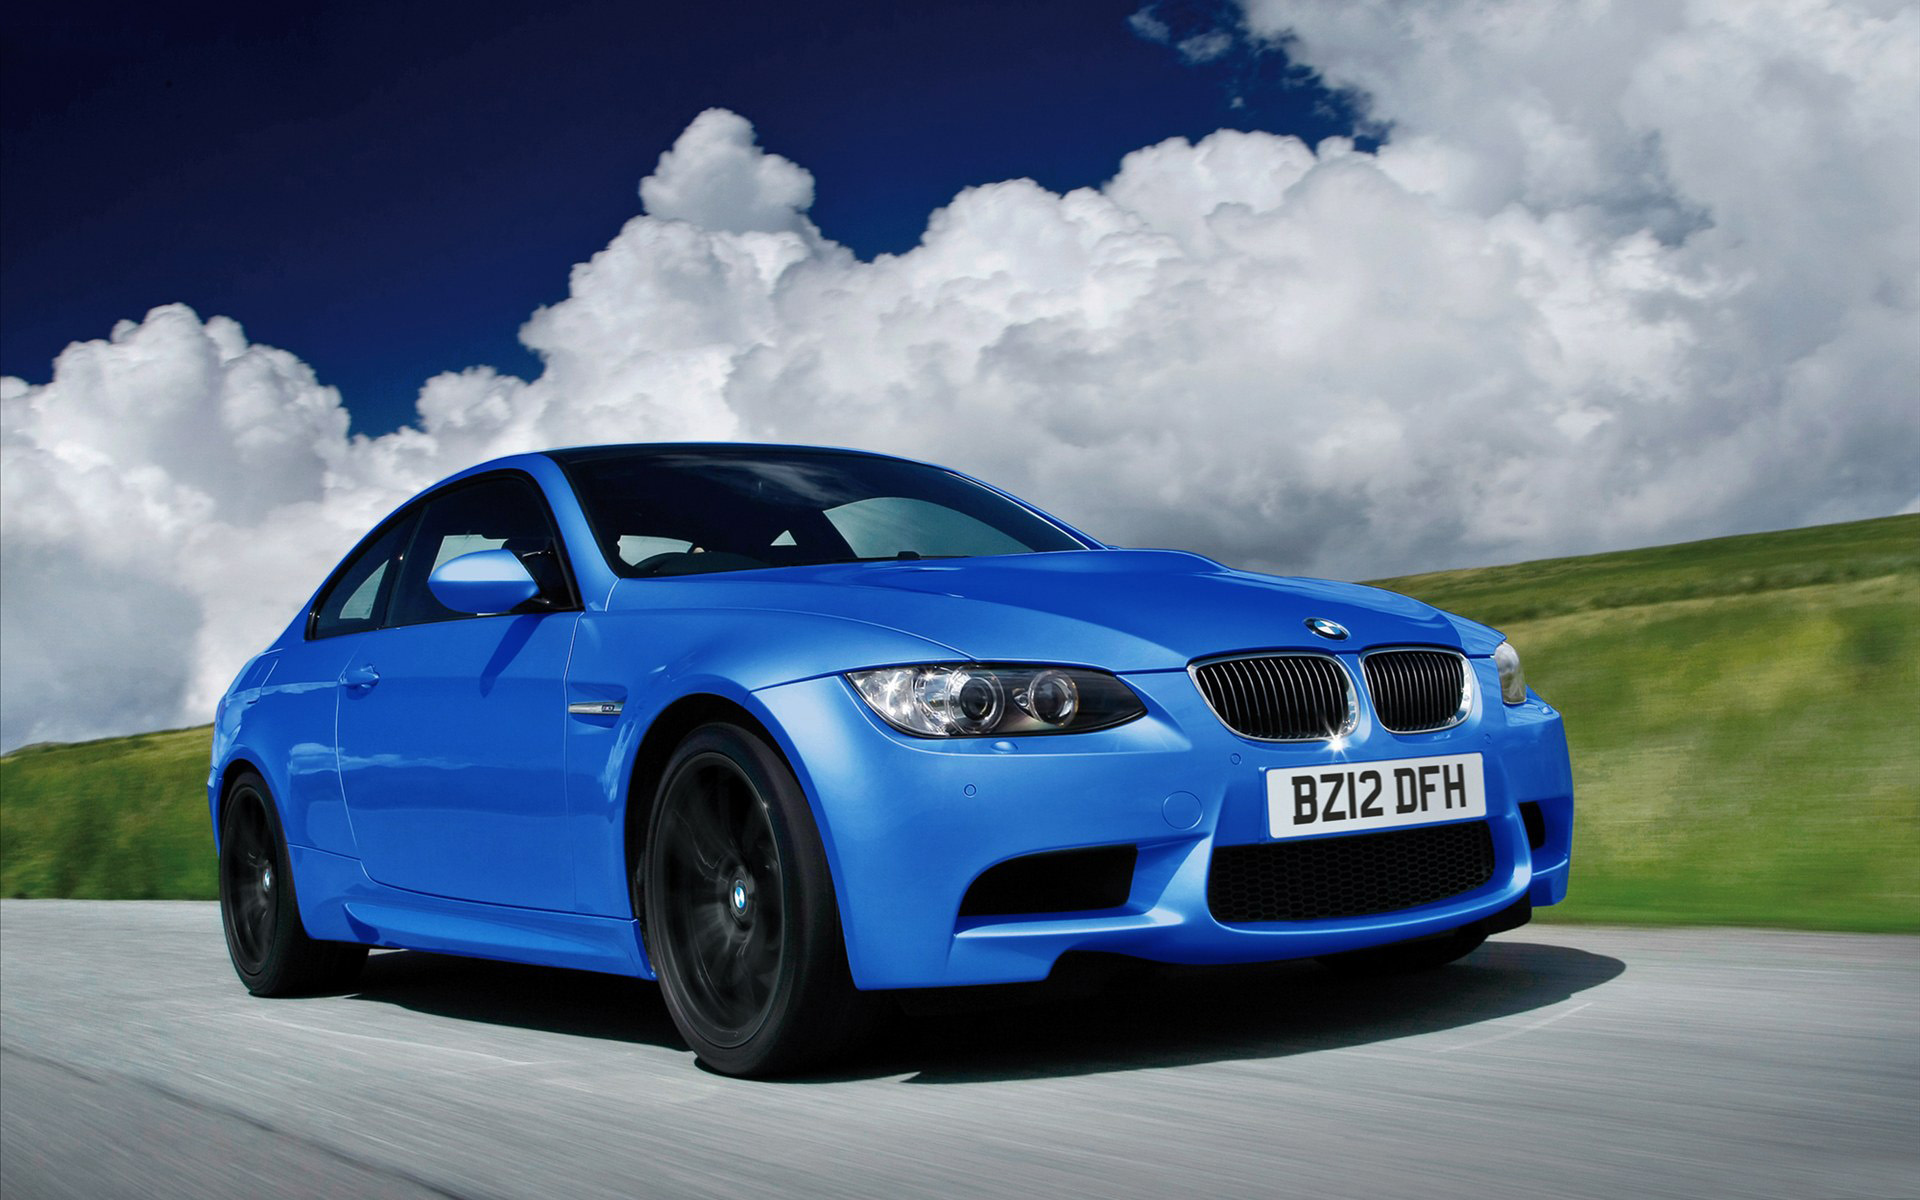 Download 2015 Bmw M3 Gtr Hd Picture Wallpaper Feel To Use